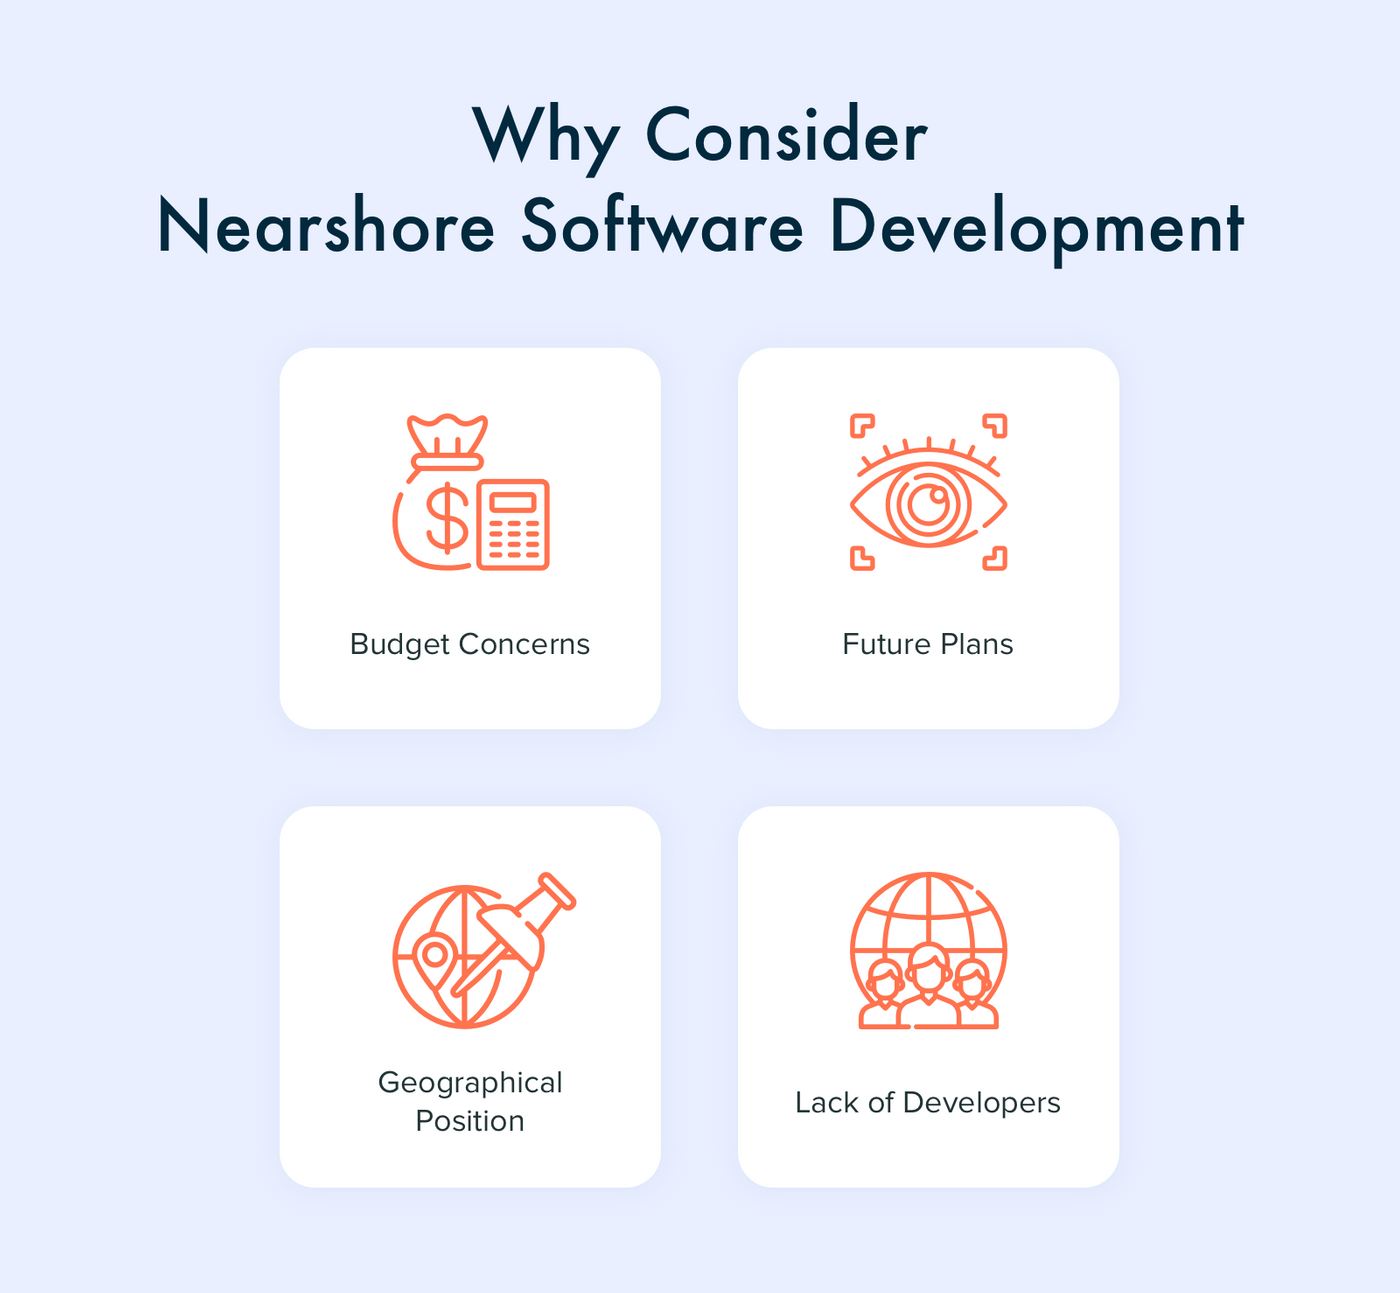 Reasons for Choosing Nearshore Software Outsourcing